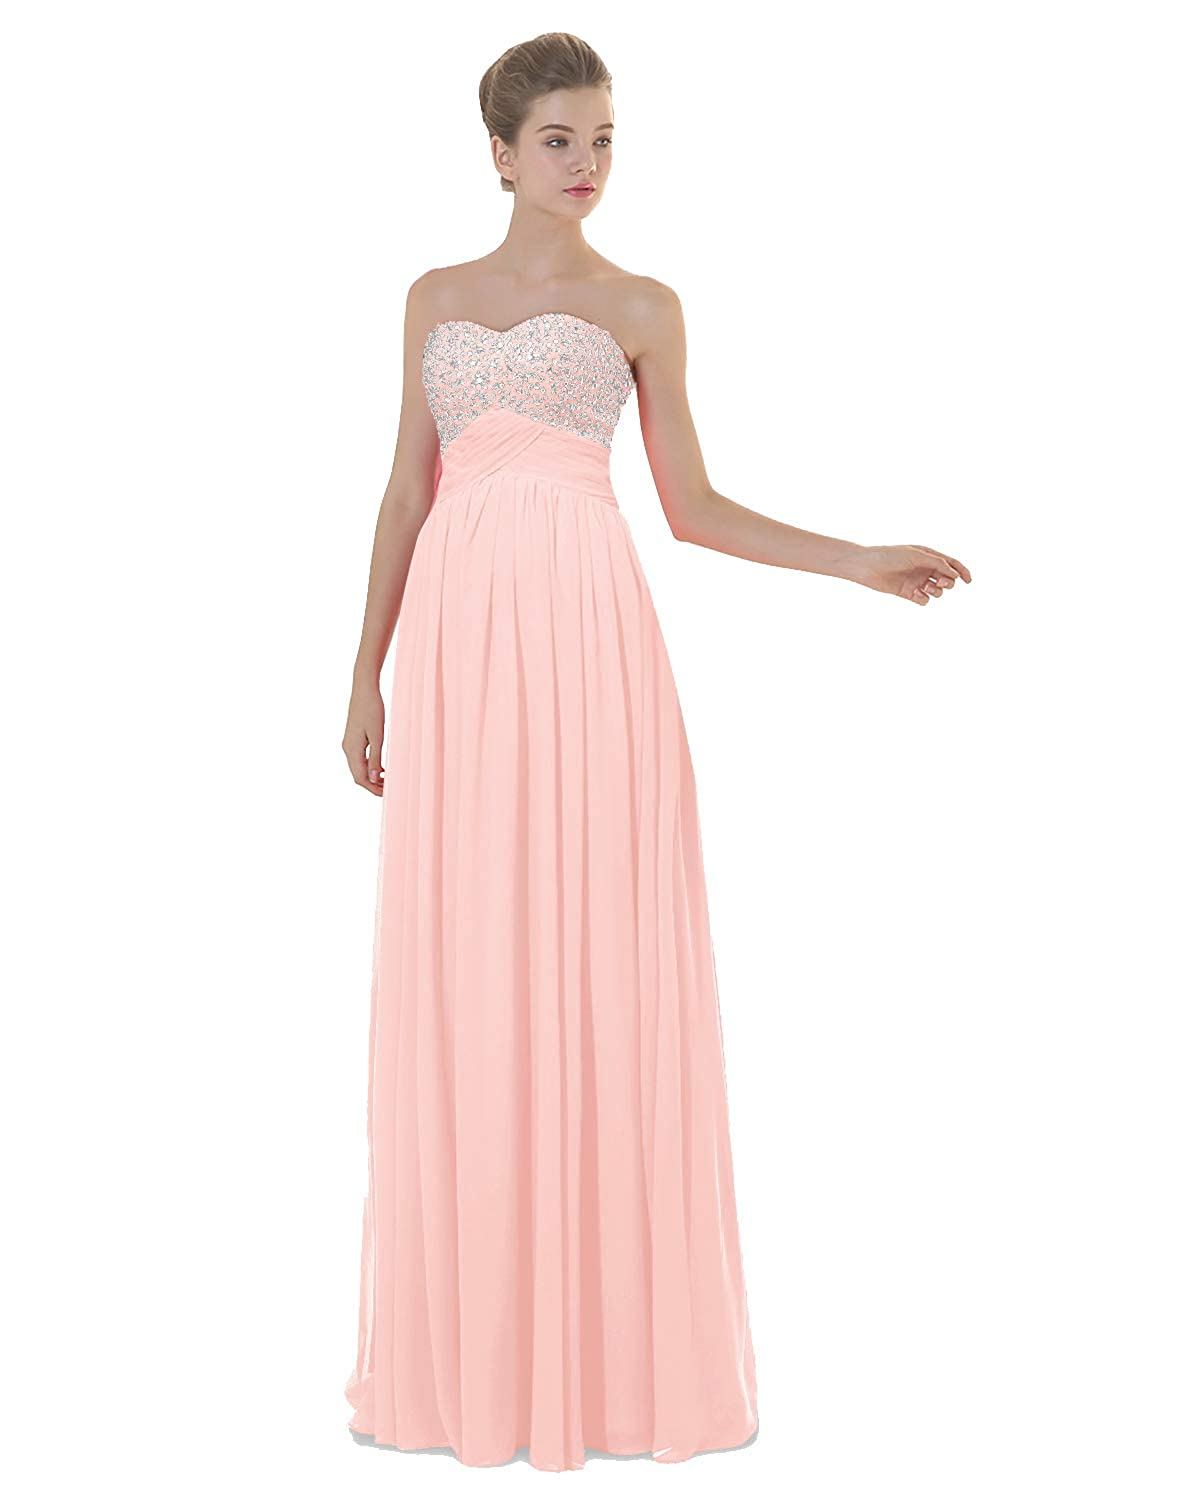 Pink ANGELWARDROBE Empire Beaded Sweetheart Neck Prom Gowns Long Evening Dresses Party Skirts